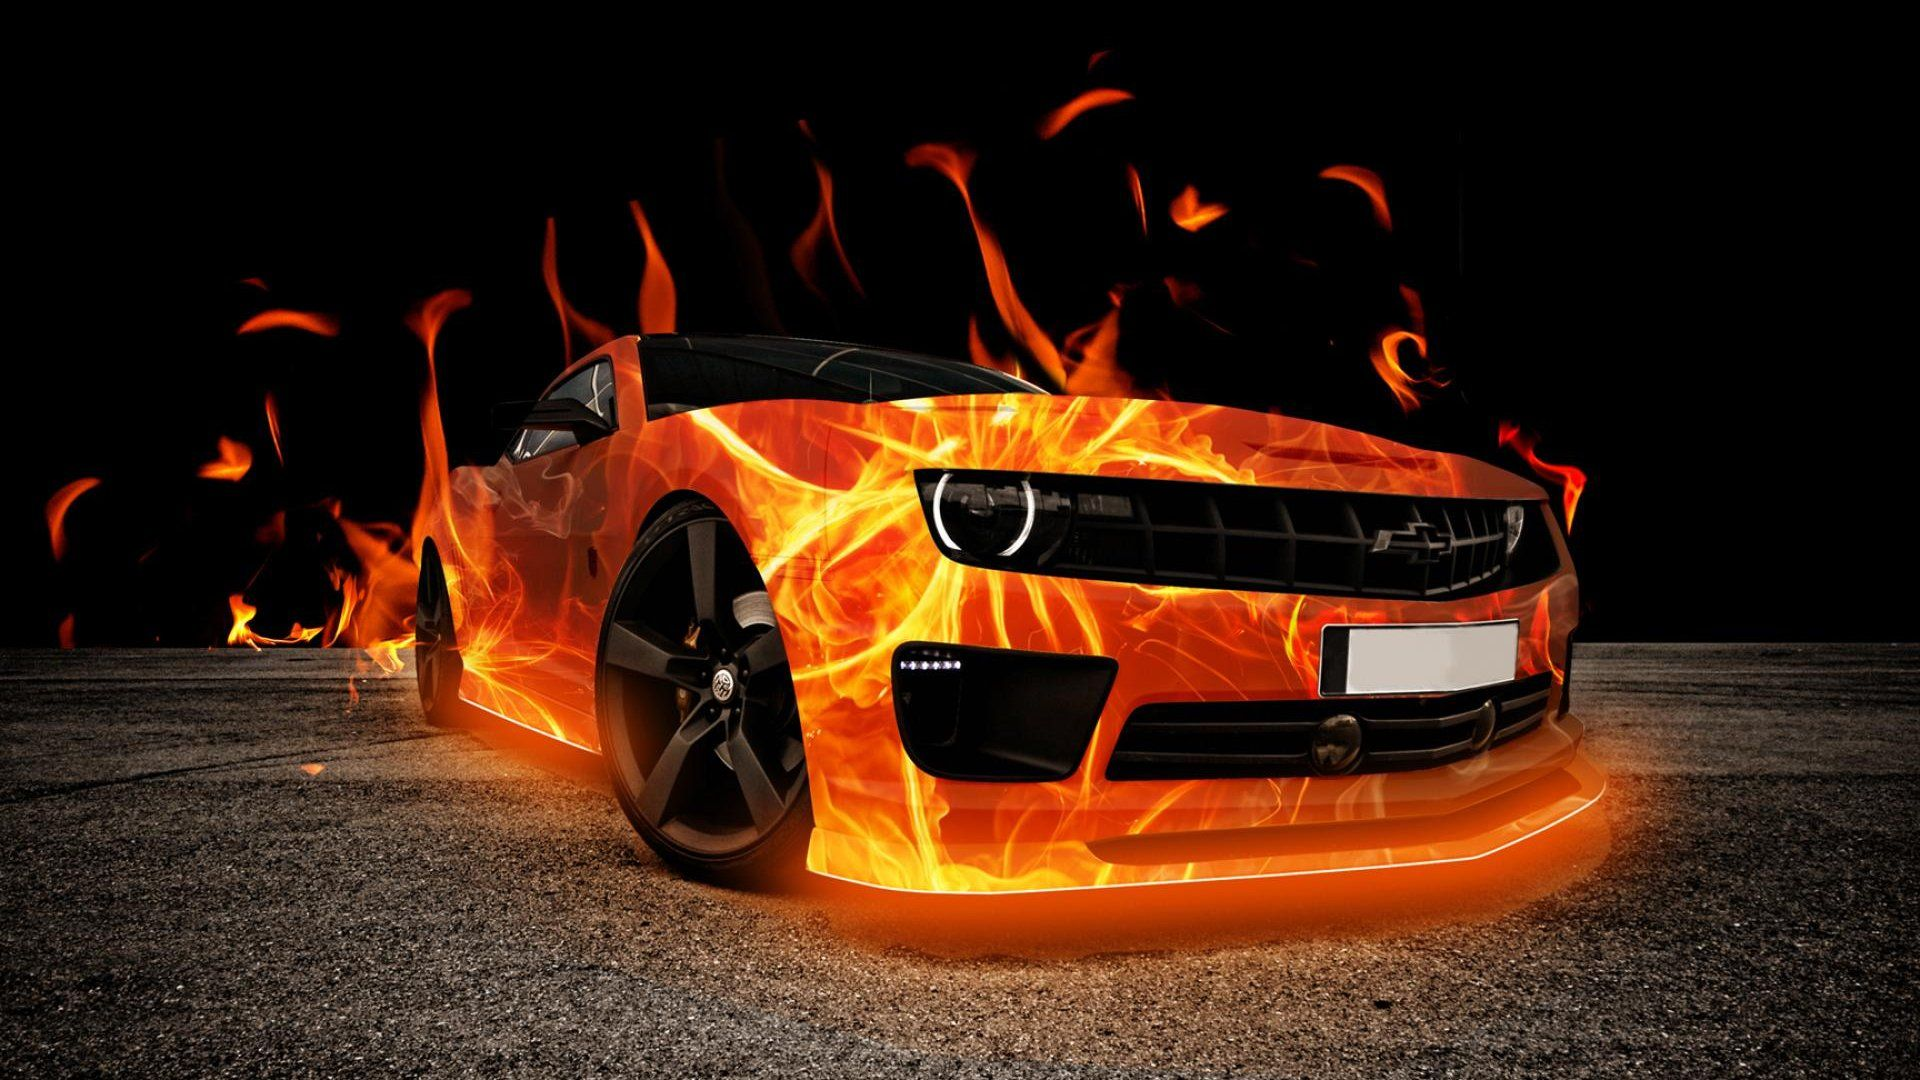 cars wallpapers hd 4k ultra hd 16:10 3840x2400 sort wallpapers by: Wallpapers 1080p Hd Car Wallpapers 1920x1080 Full Screen For Pc